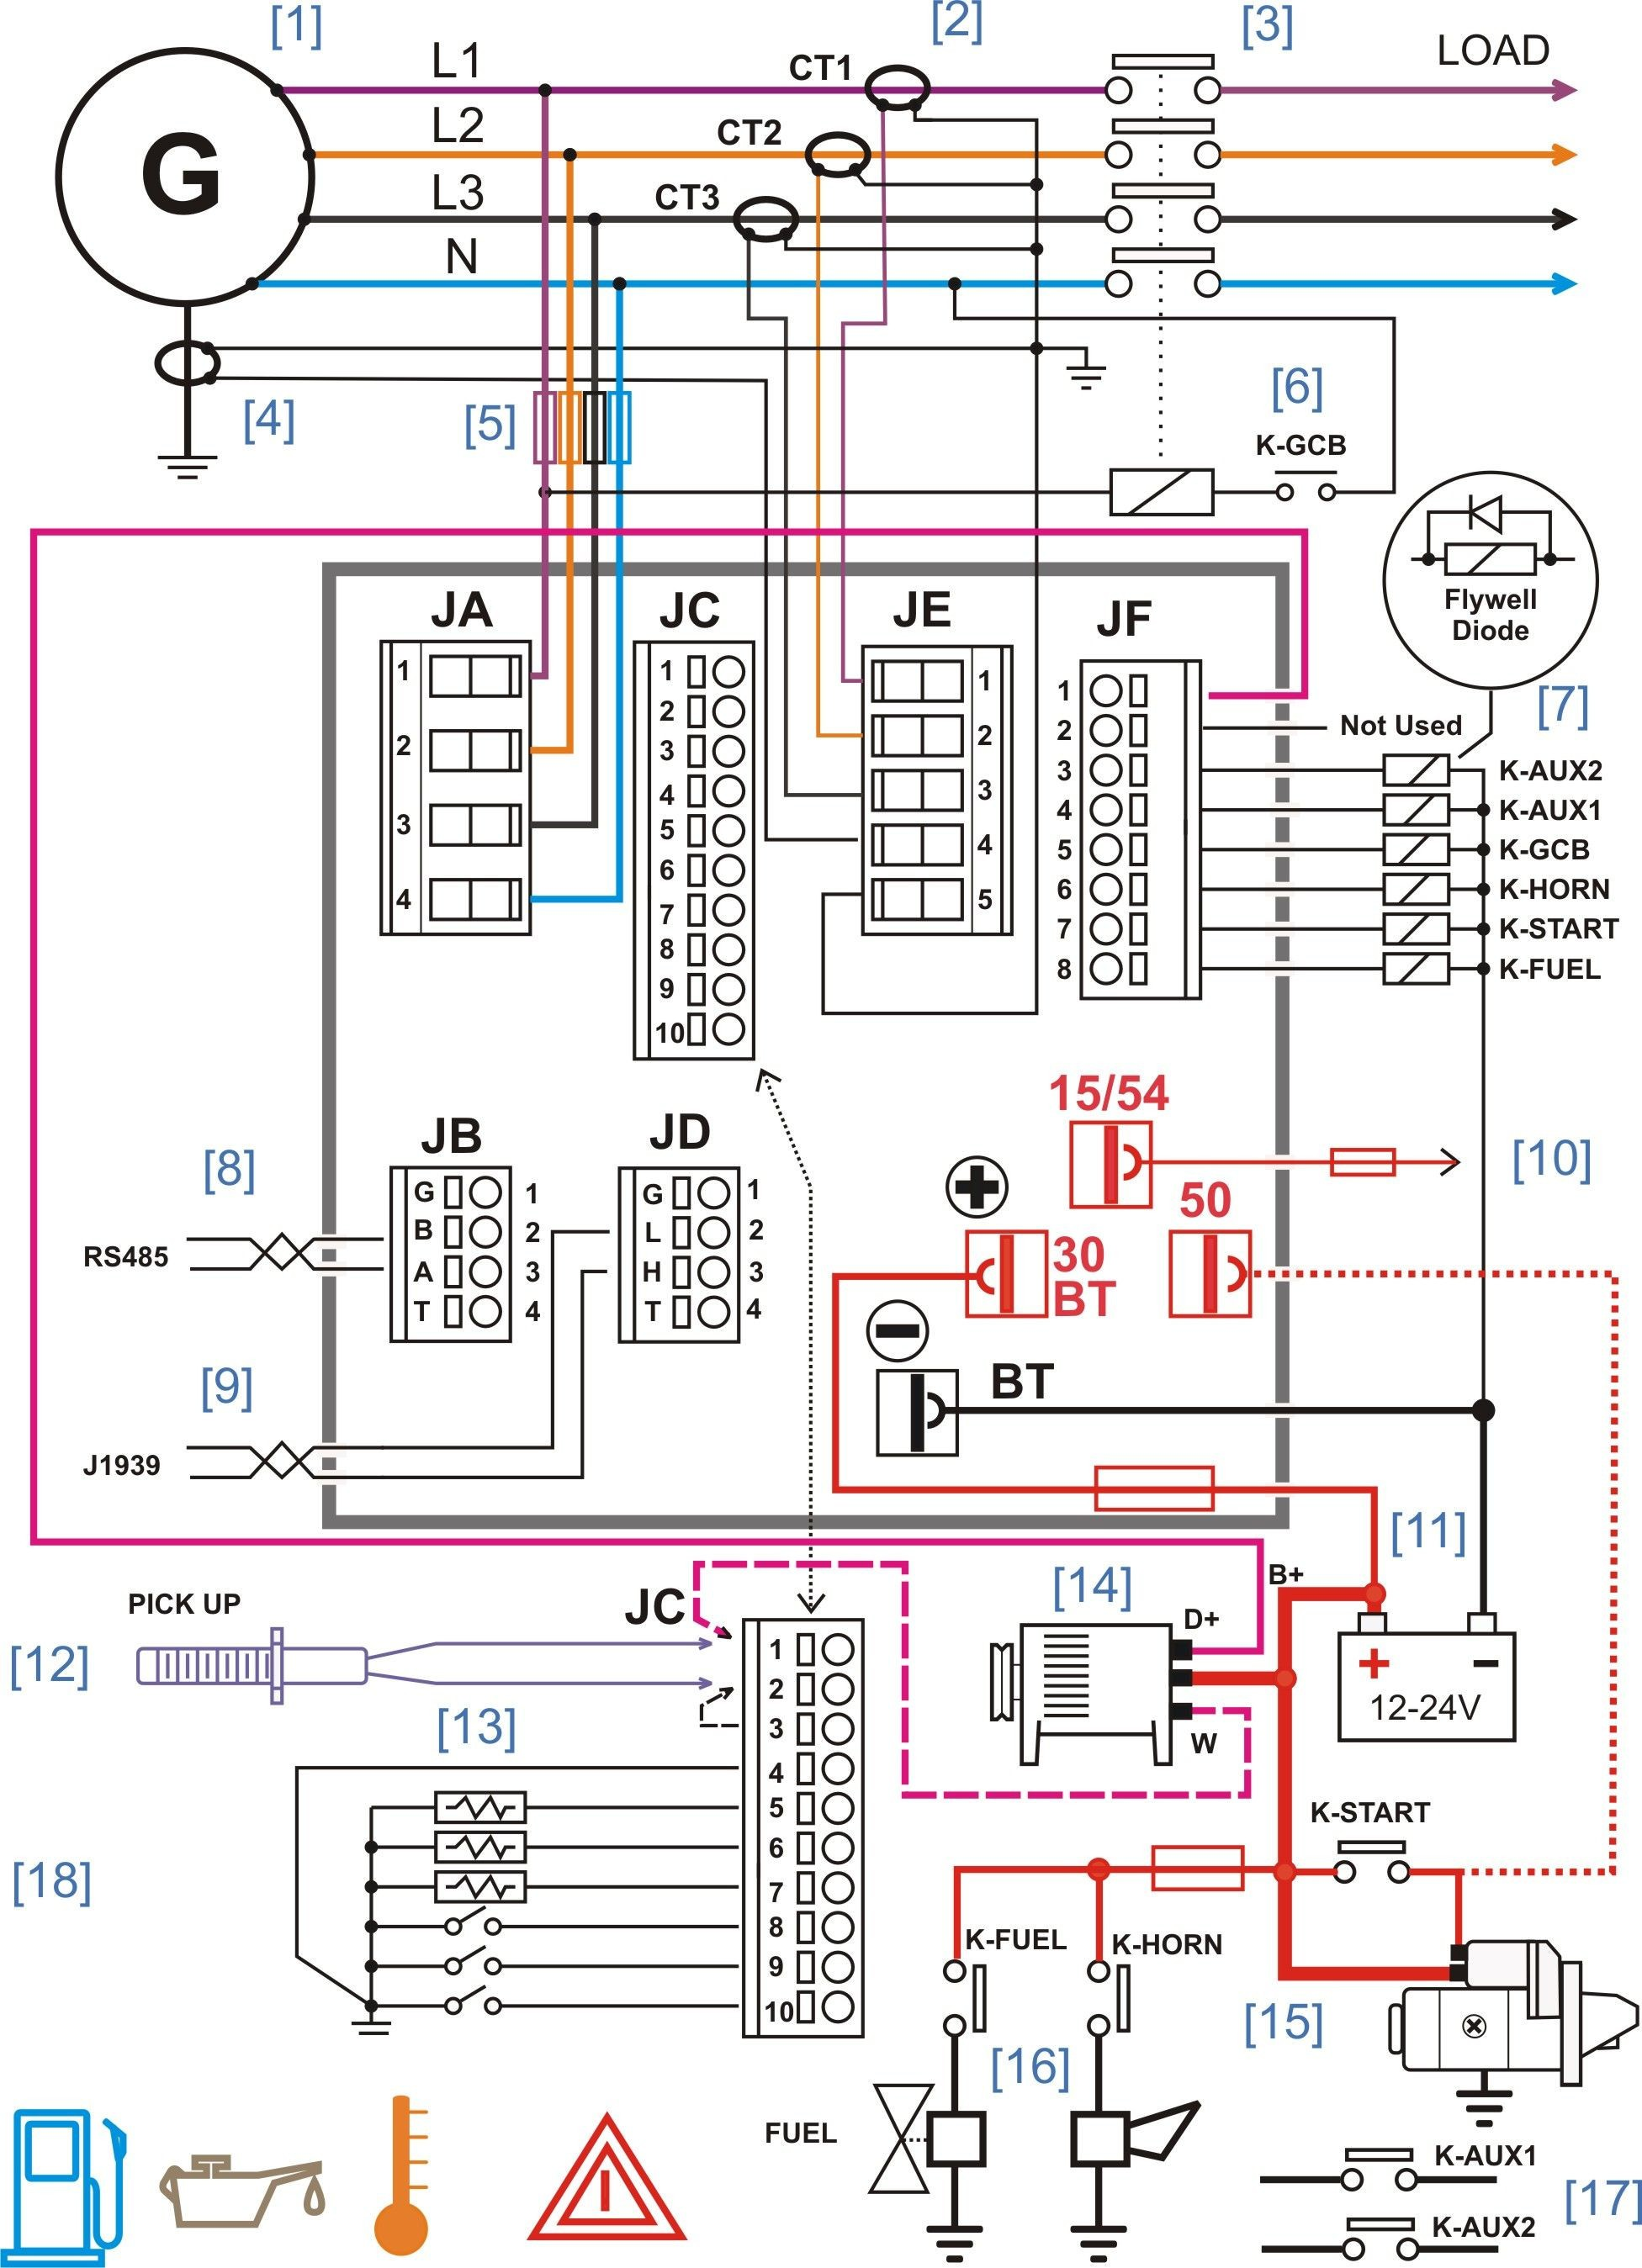 australian house wiring diagram venn example math problems old electrical diagrams image